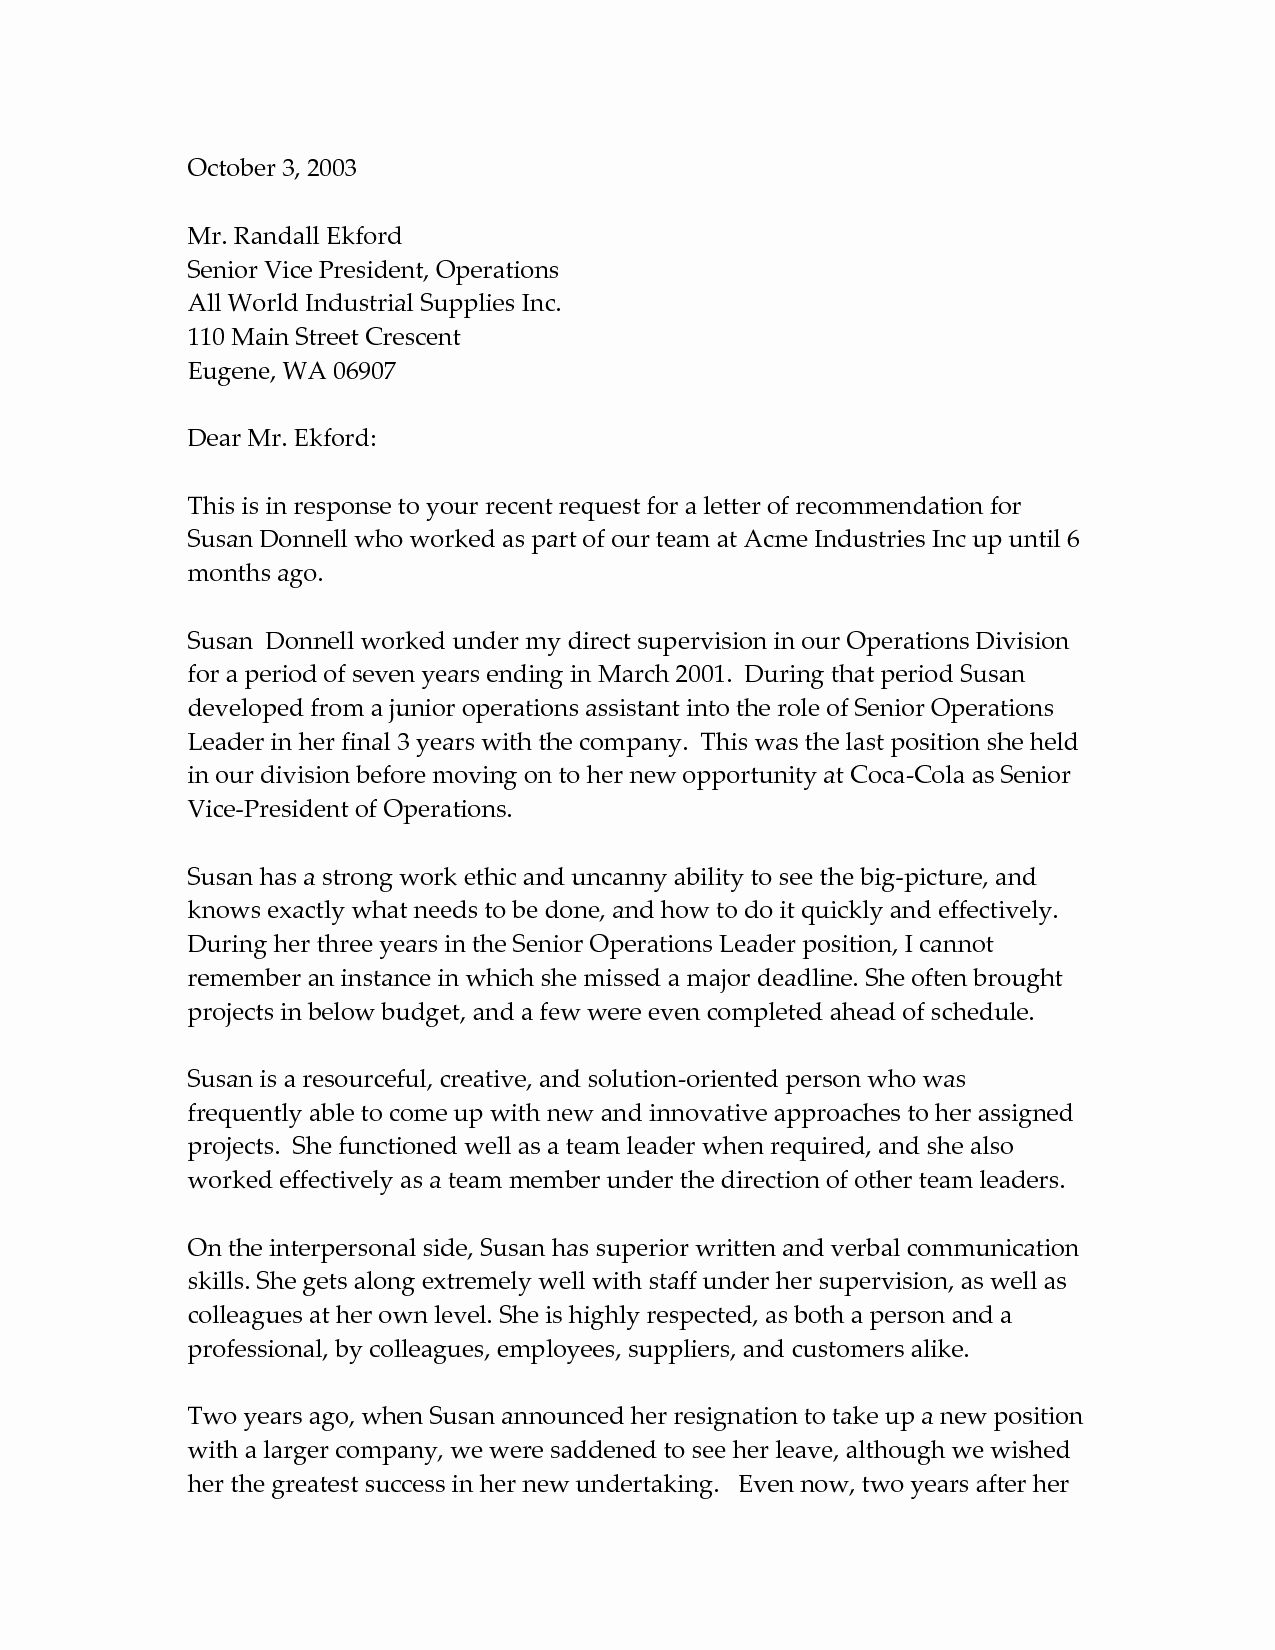 40 professional reference letter template in 2020 accounting assistant resume with experience objective for computer engineer internship